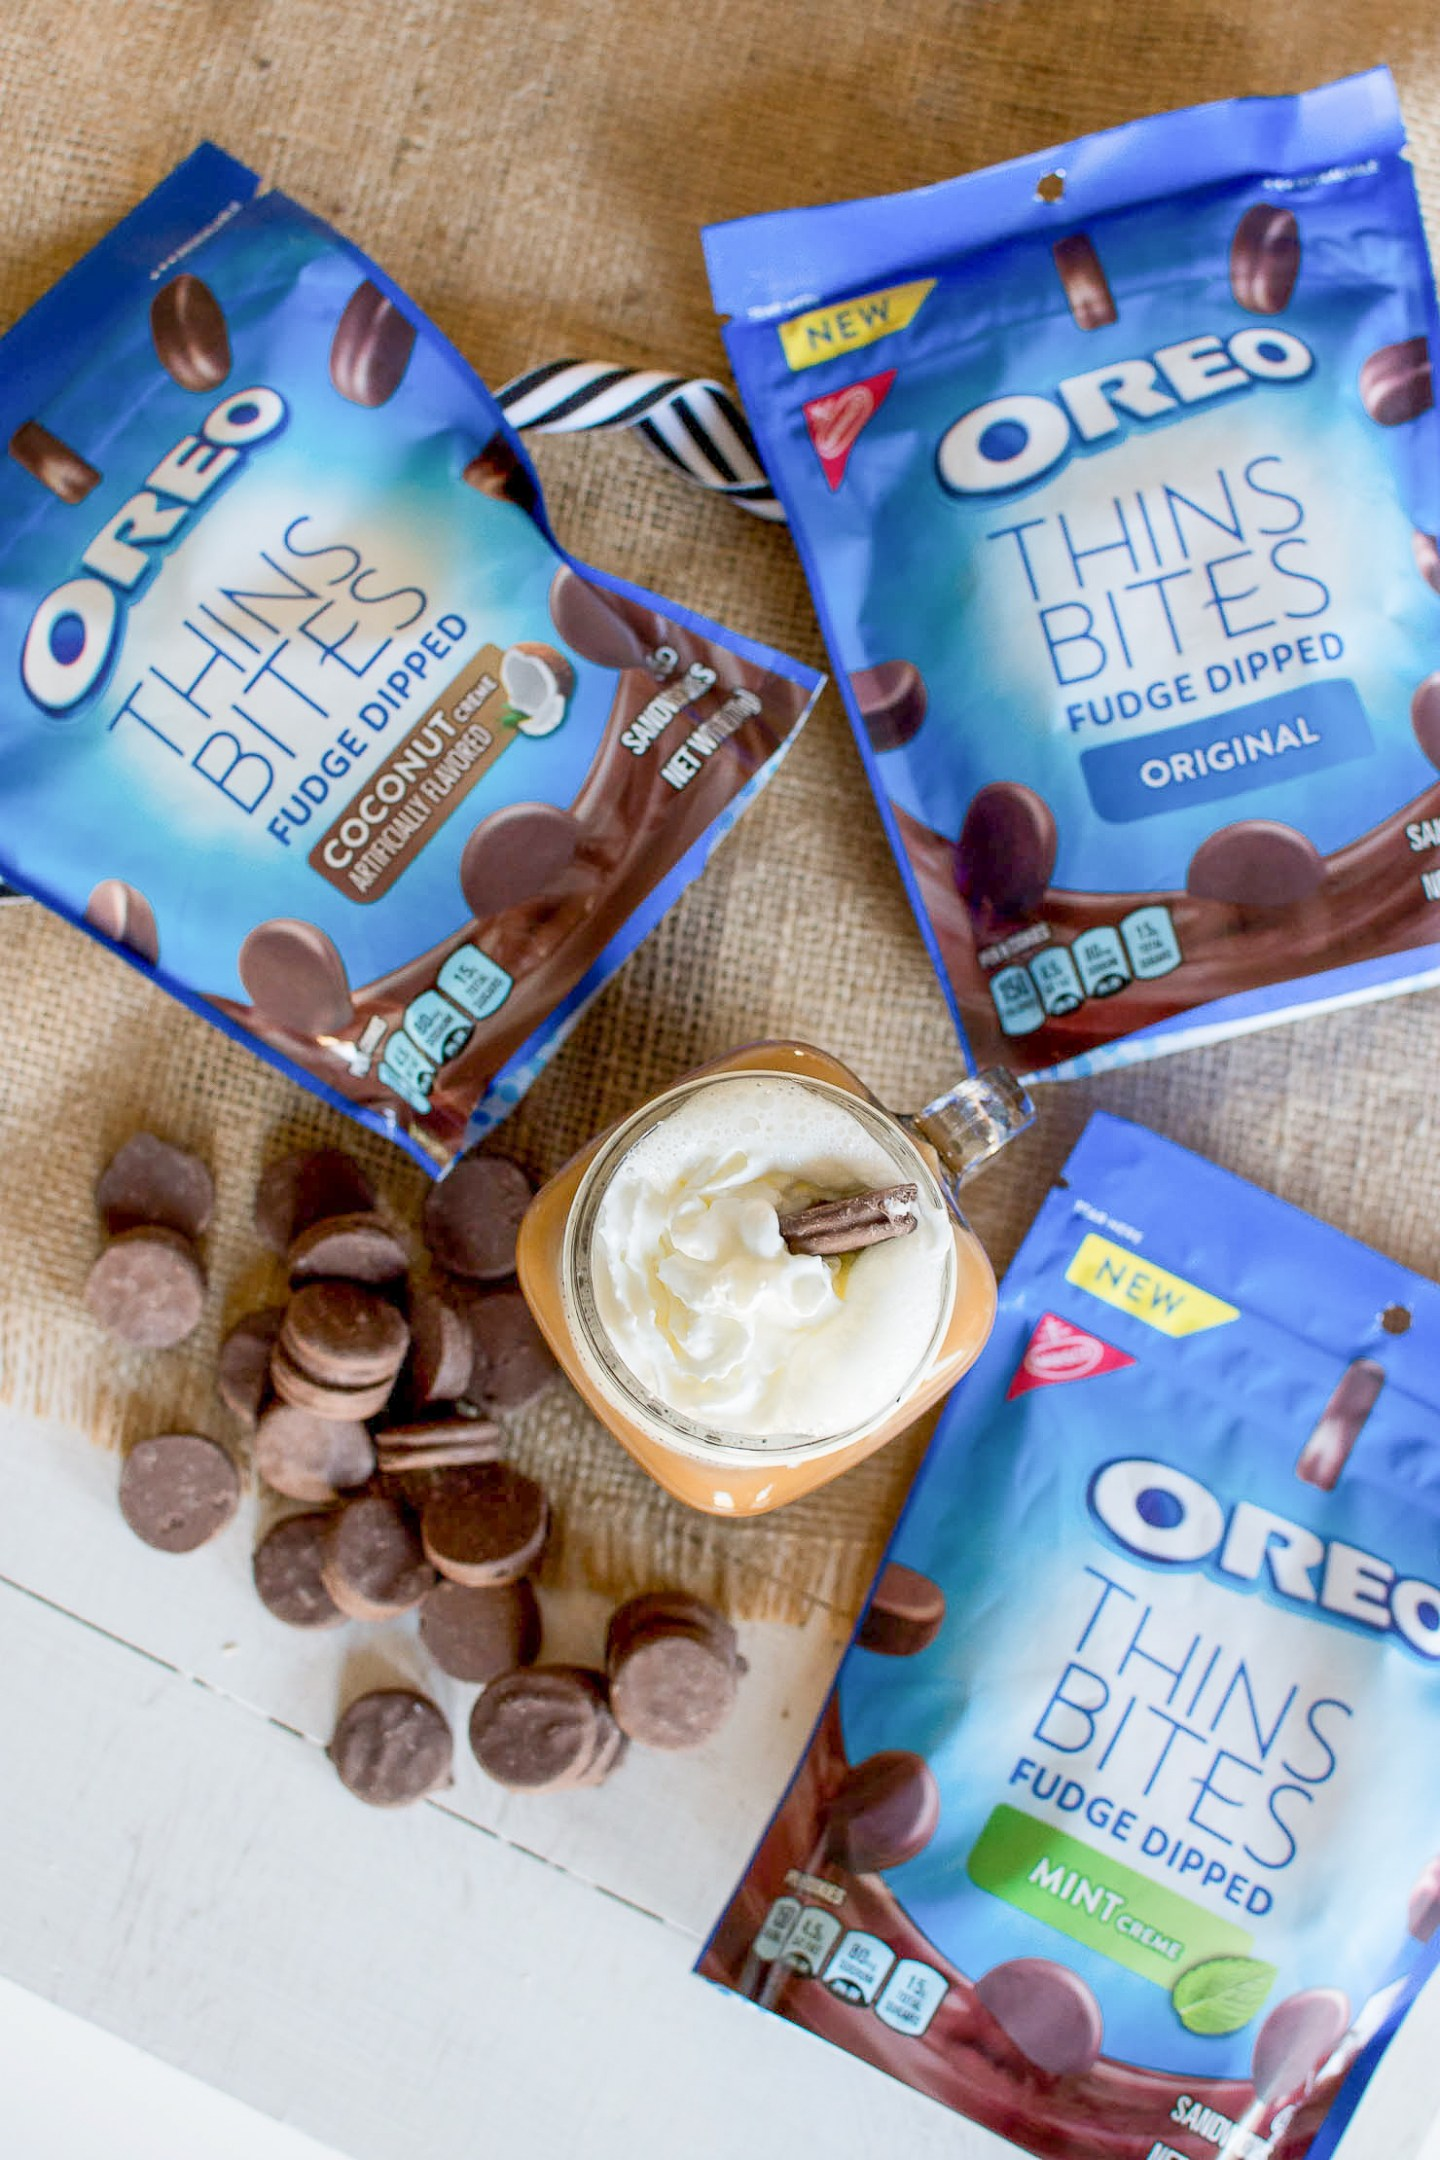 Oreo Thin Bites, coconut, mint, original flavor, the perfect afternoon snack, aftenoon coffee break, a low calorie treat, how I satisfy my sweet tooth and still watch calories